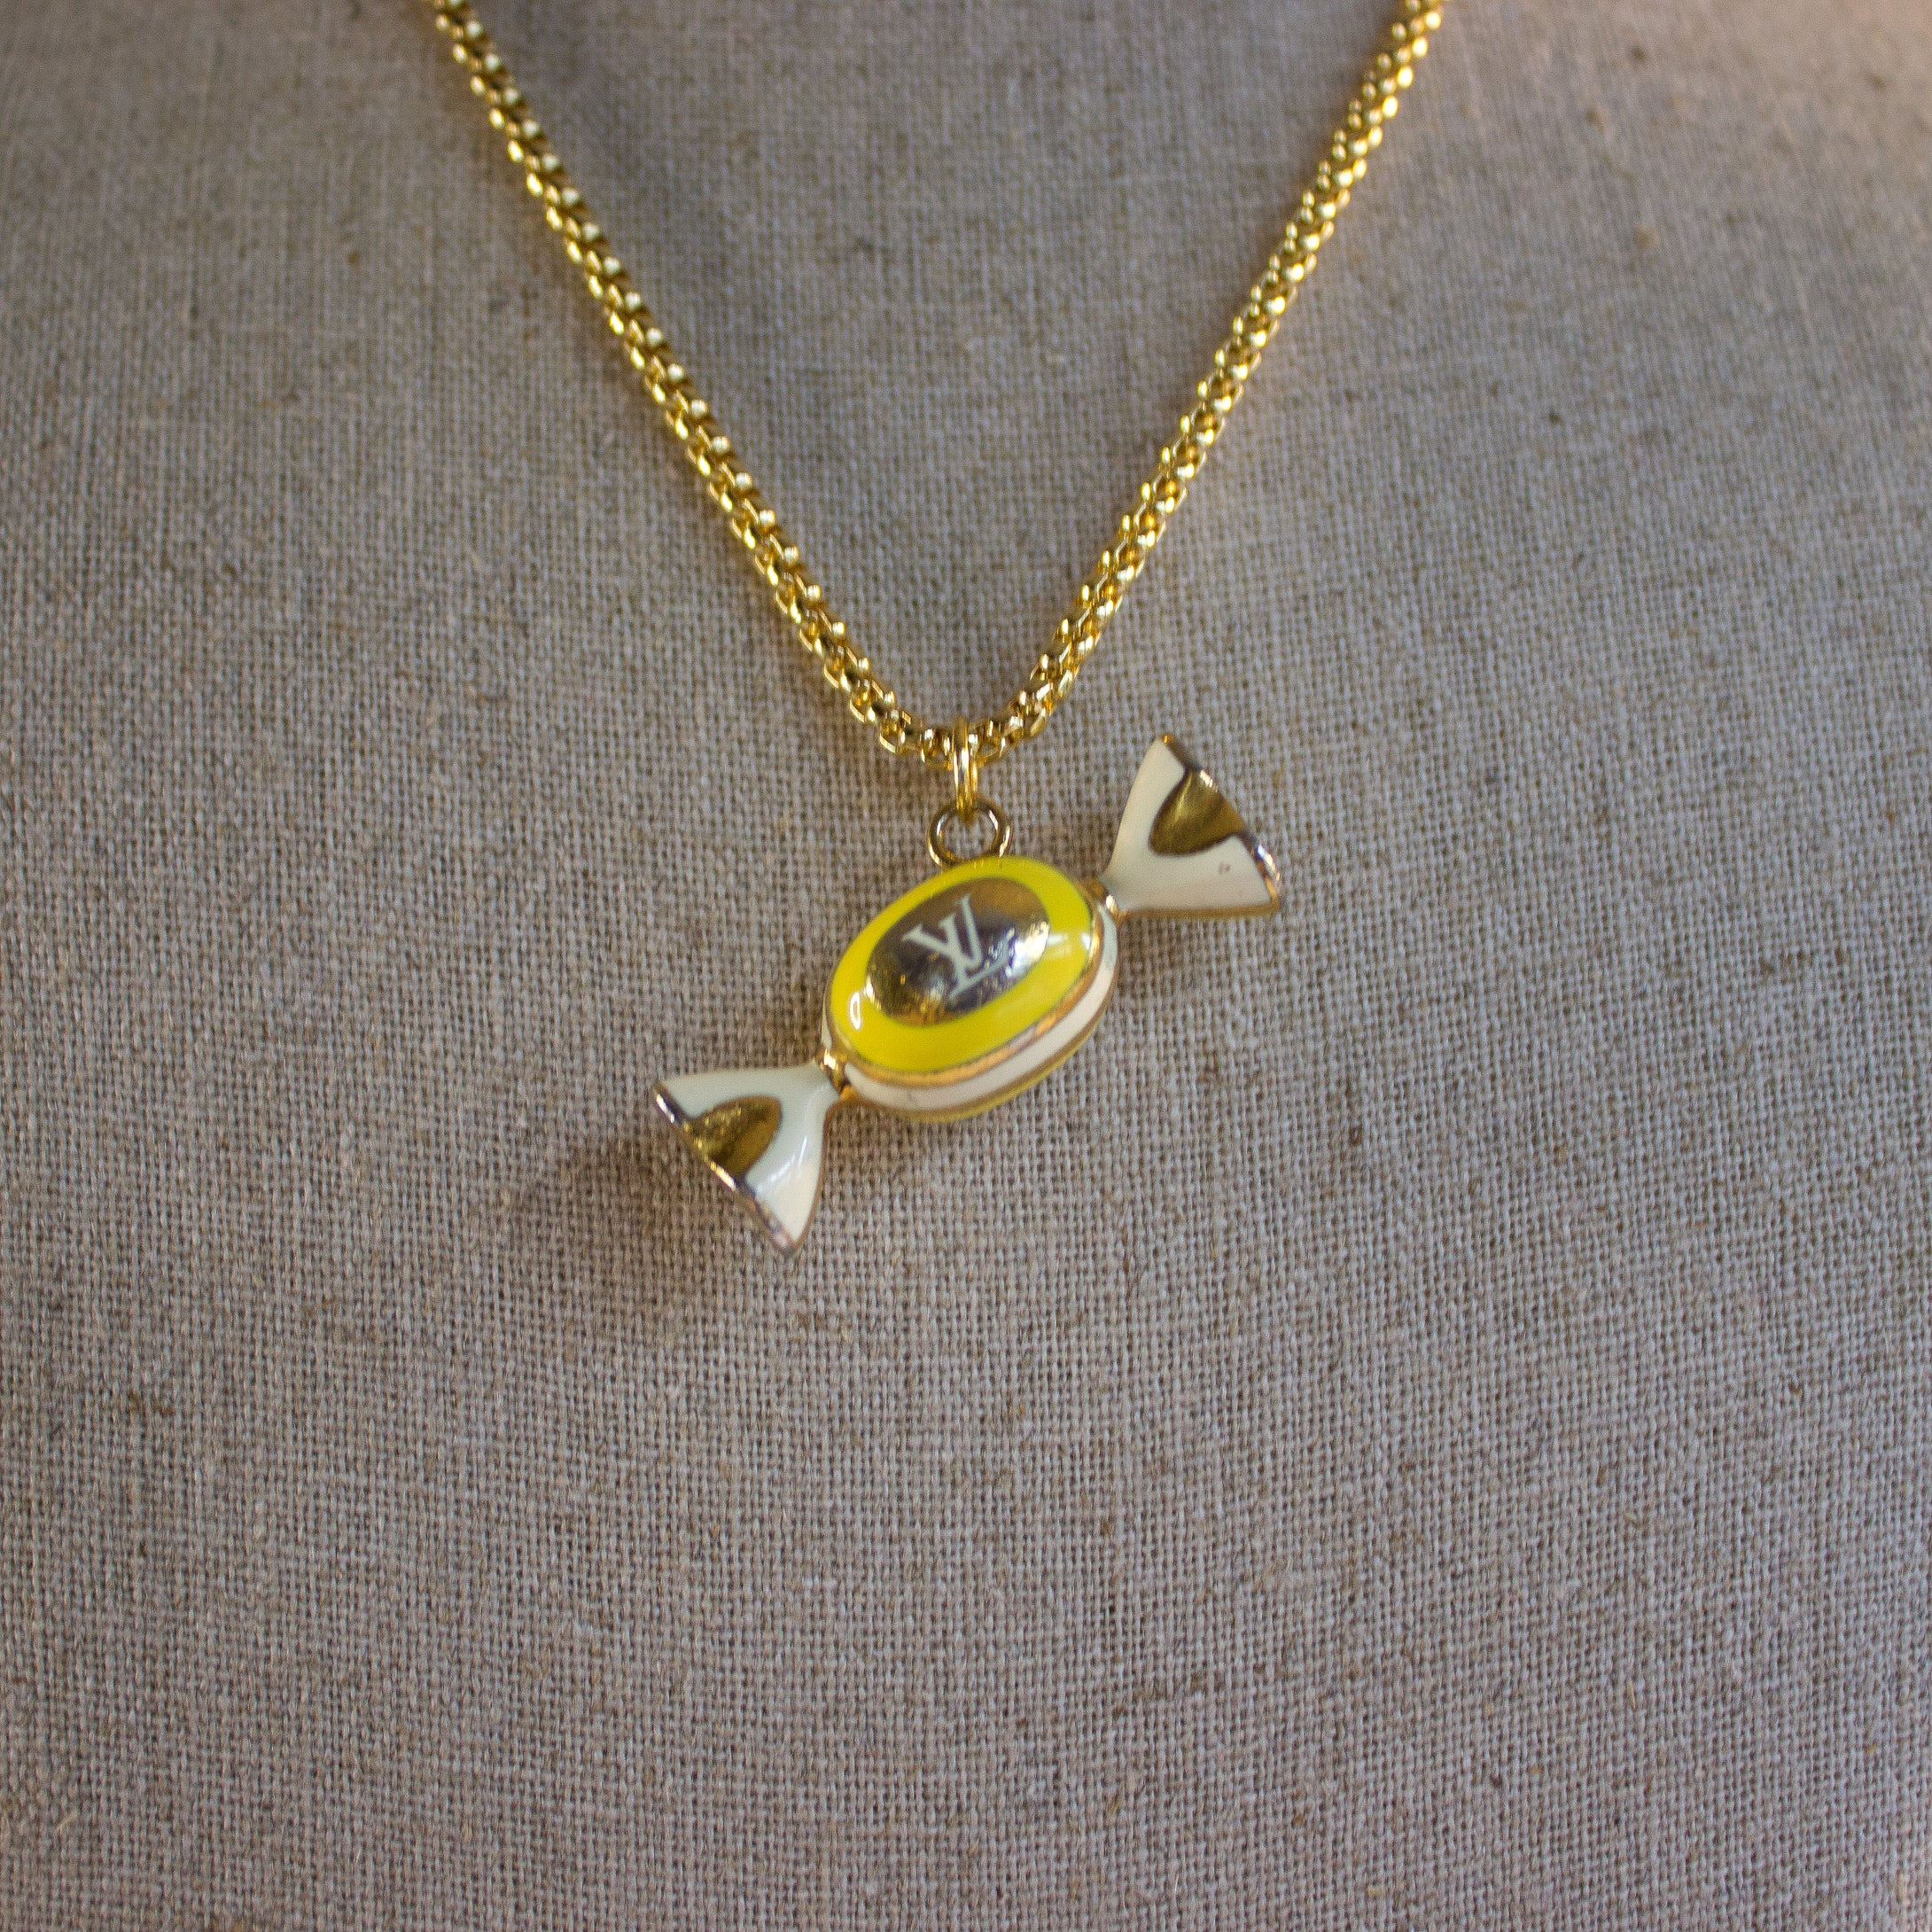 Repurposed Yellow Louis Vuitton Candy Charm Necklace